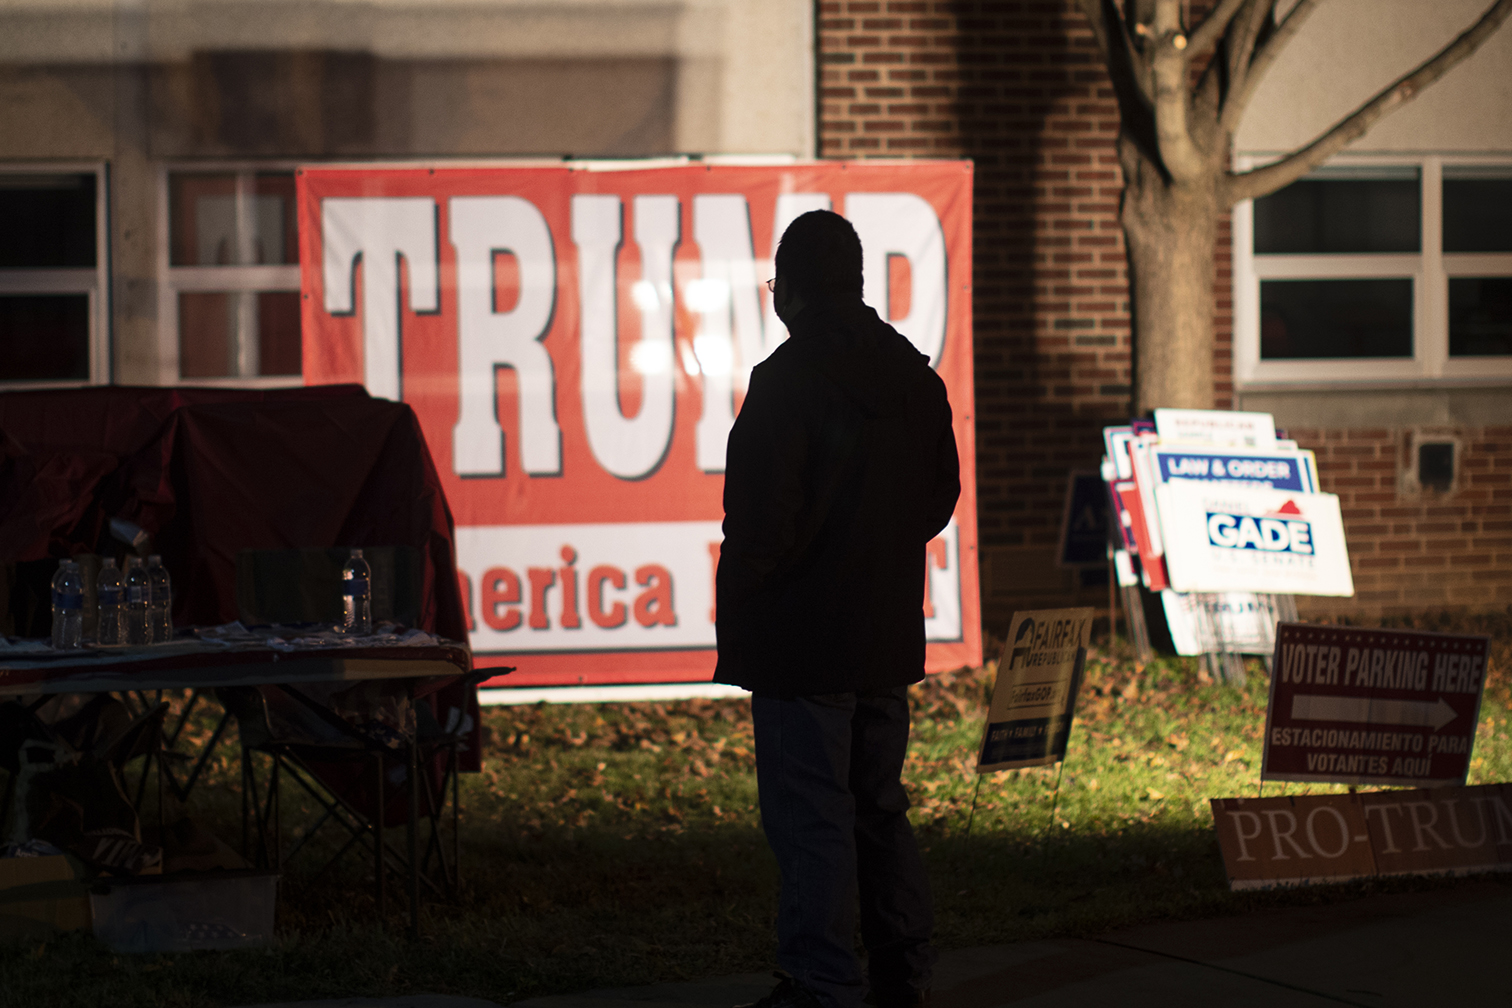 A+silhouette+of+a+person+standing+in+front+of+a+Trump+campaign+sign.